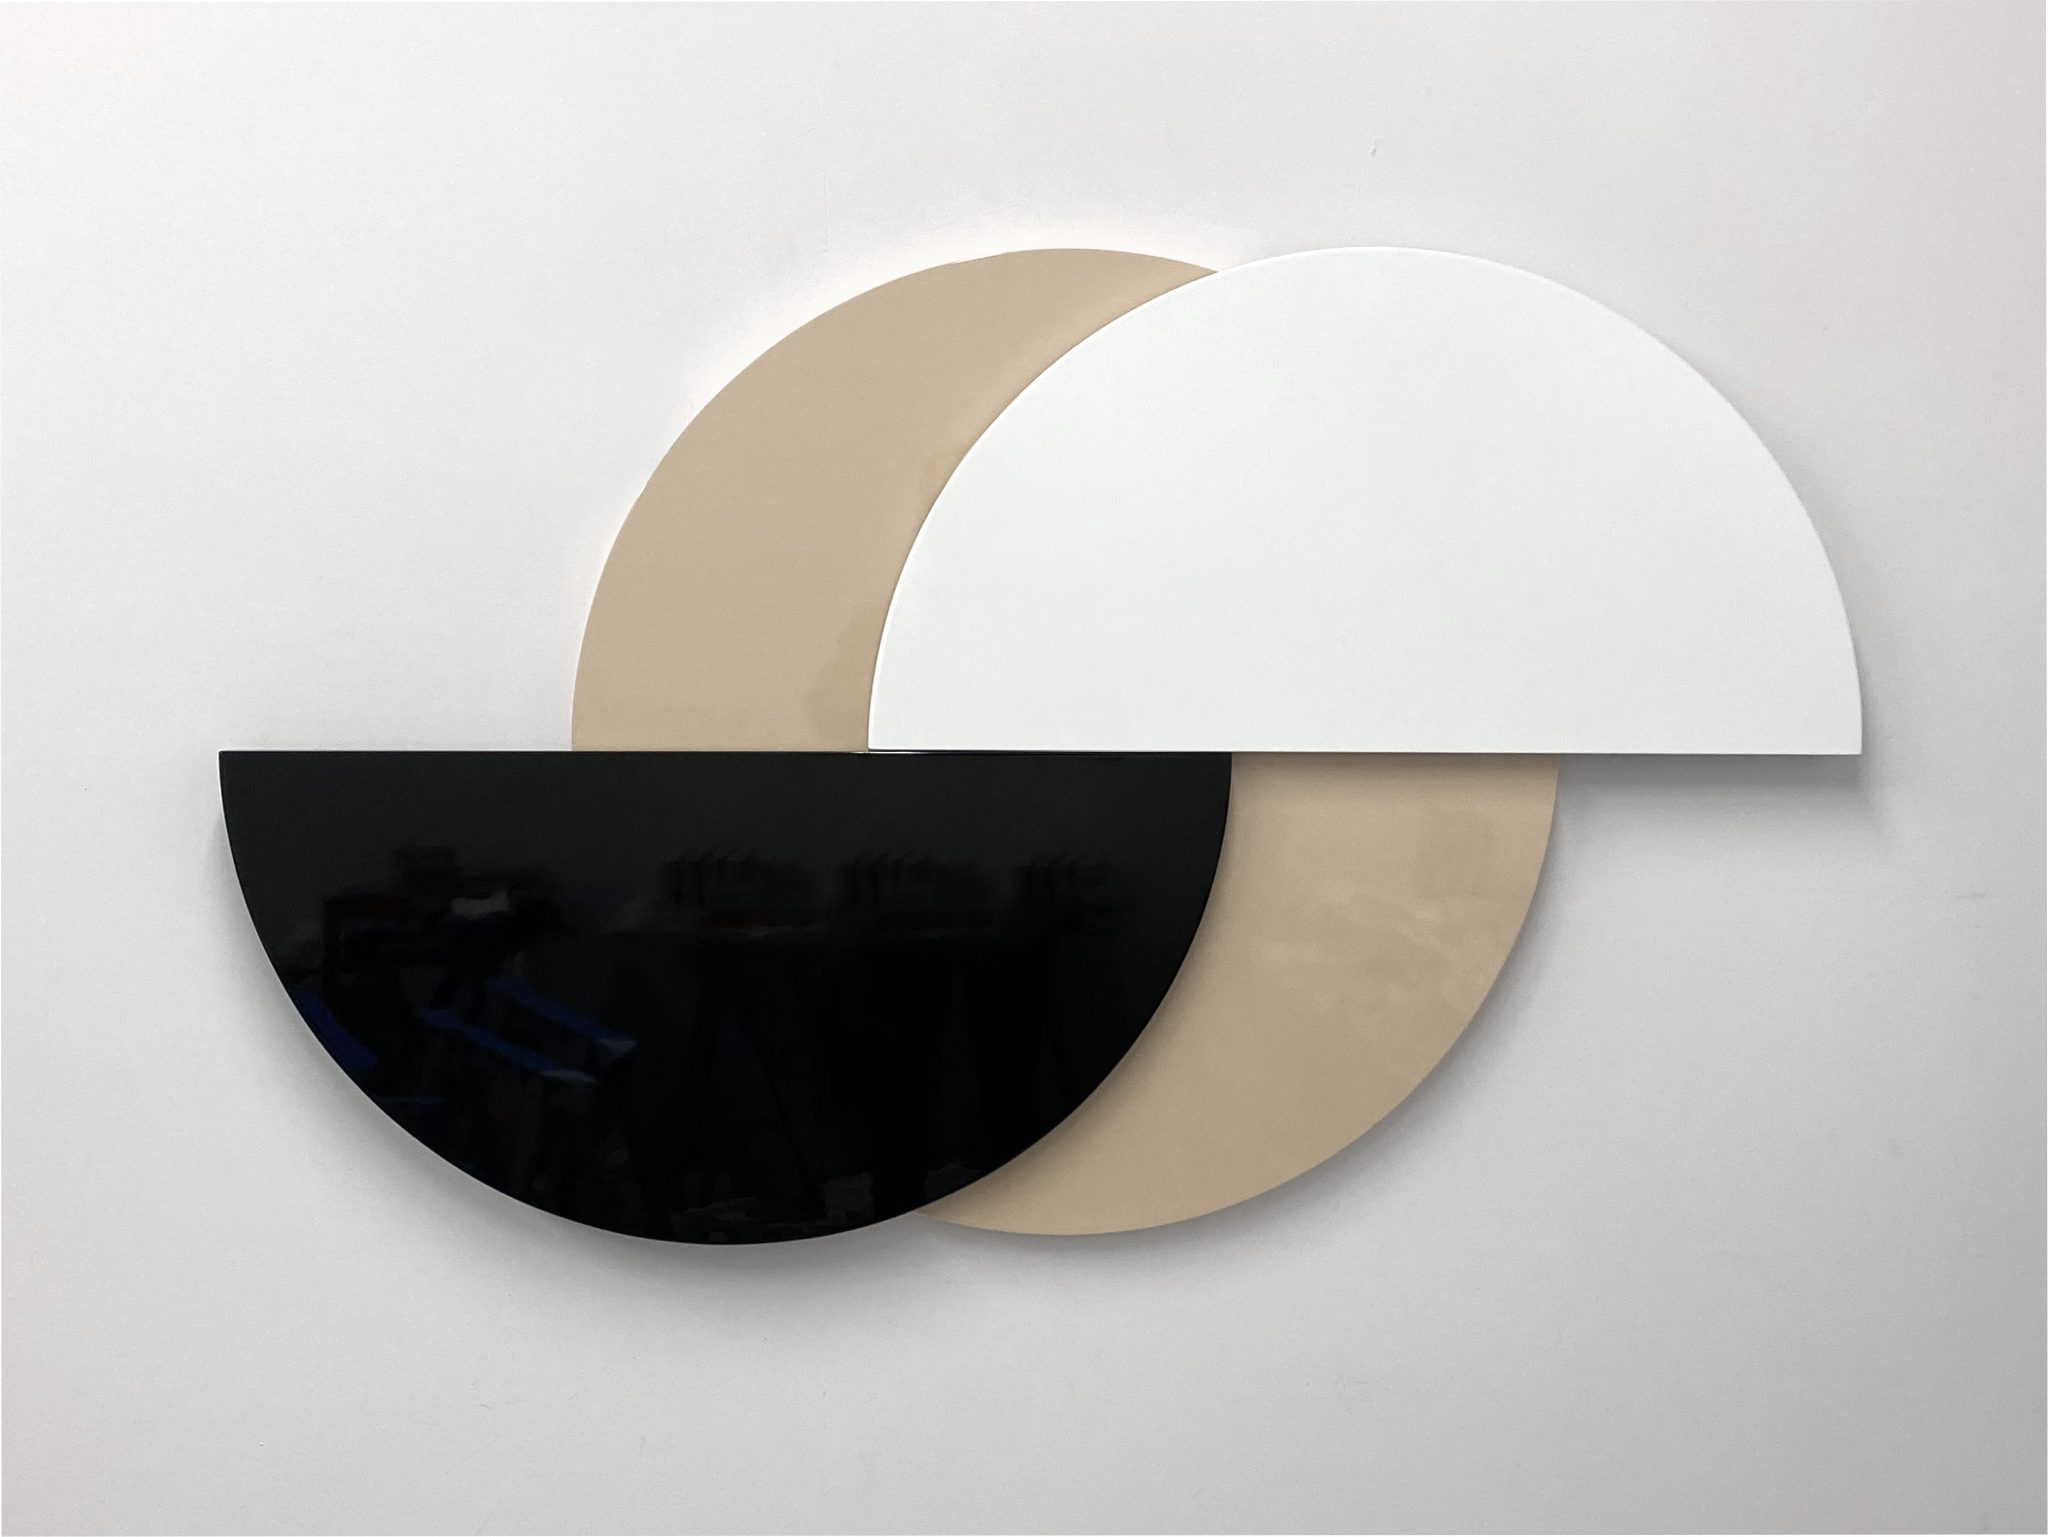 Half Moon (Beige), 3-part painted MDF and hardware, 88 x 11.5 x 5.7 cm